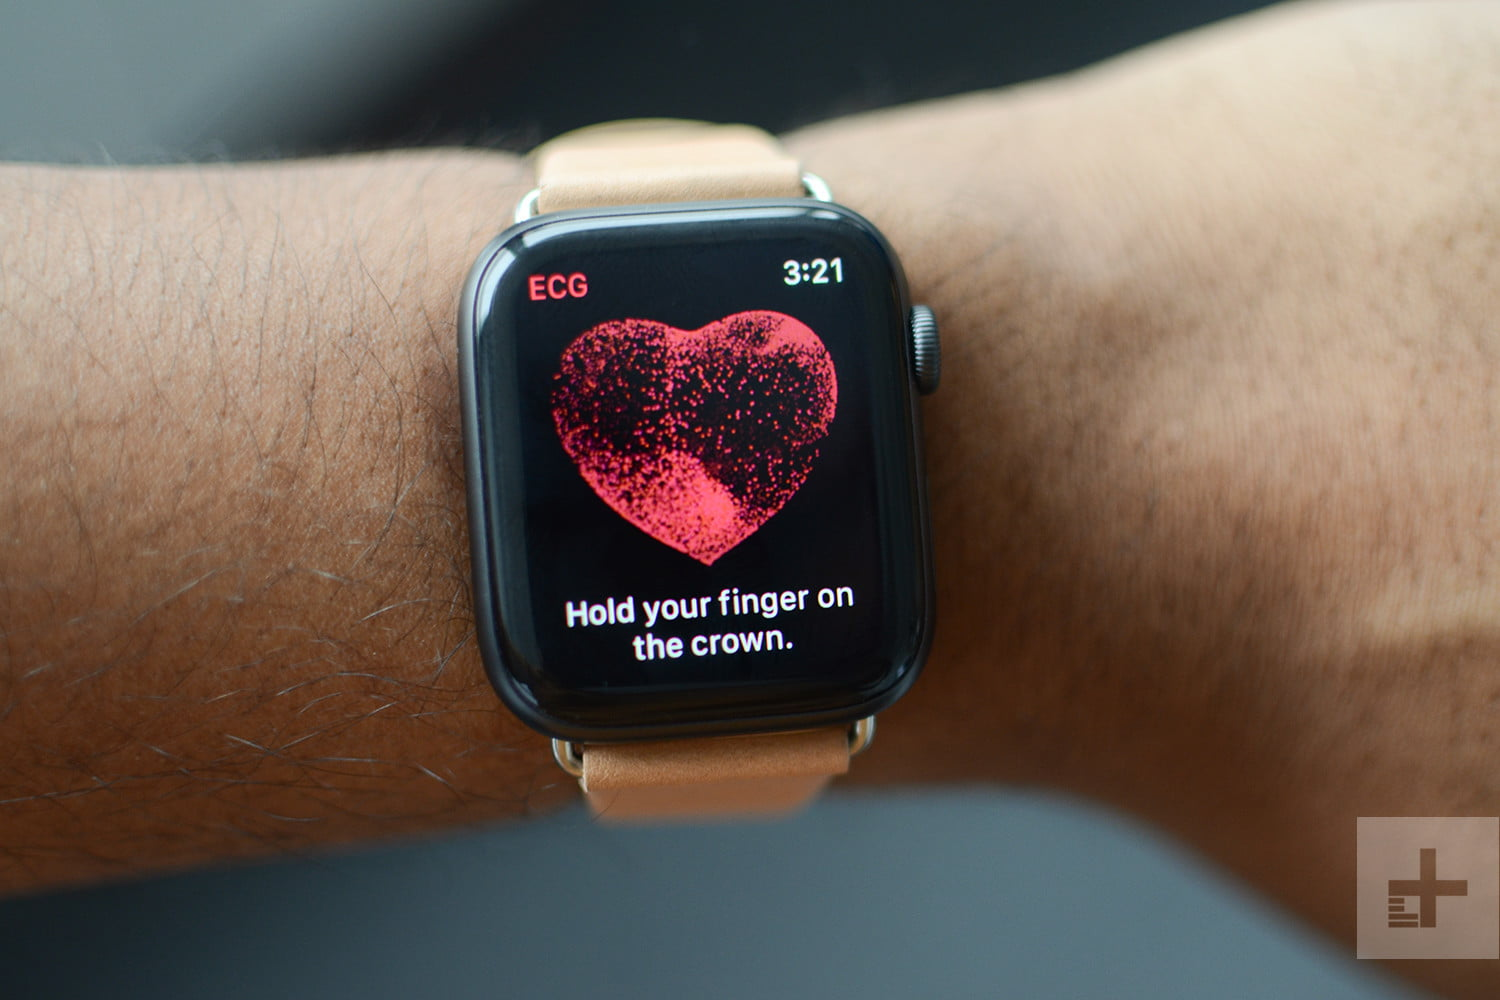 Even older Apple Watches could be effective at spotting heart conditions